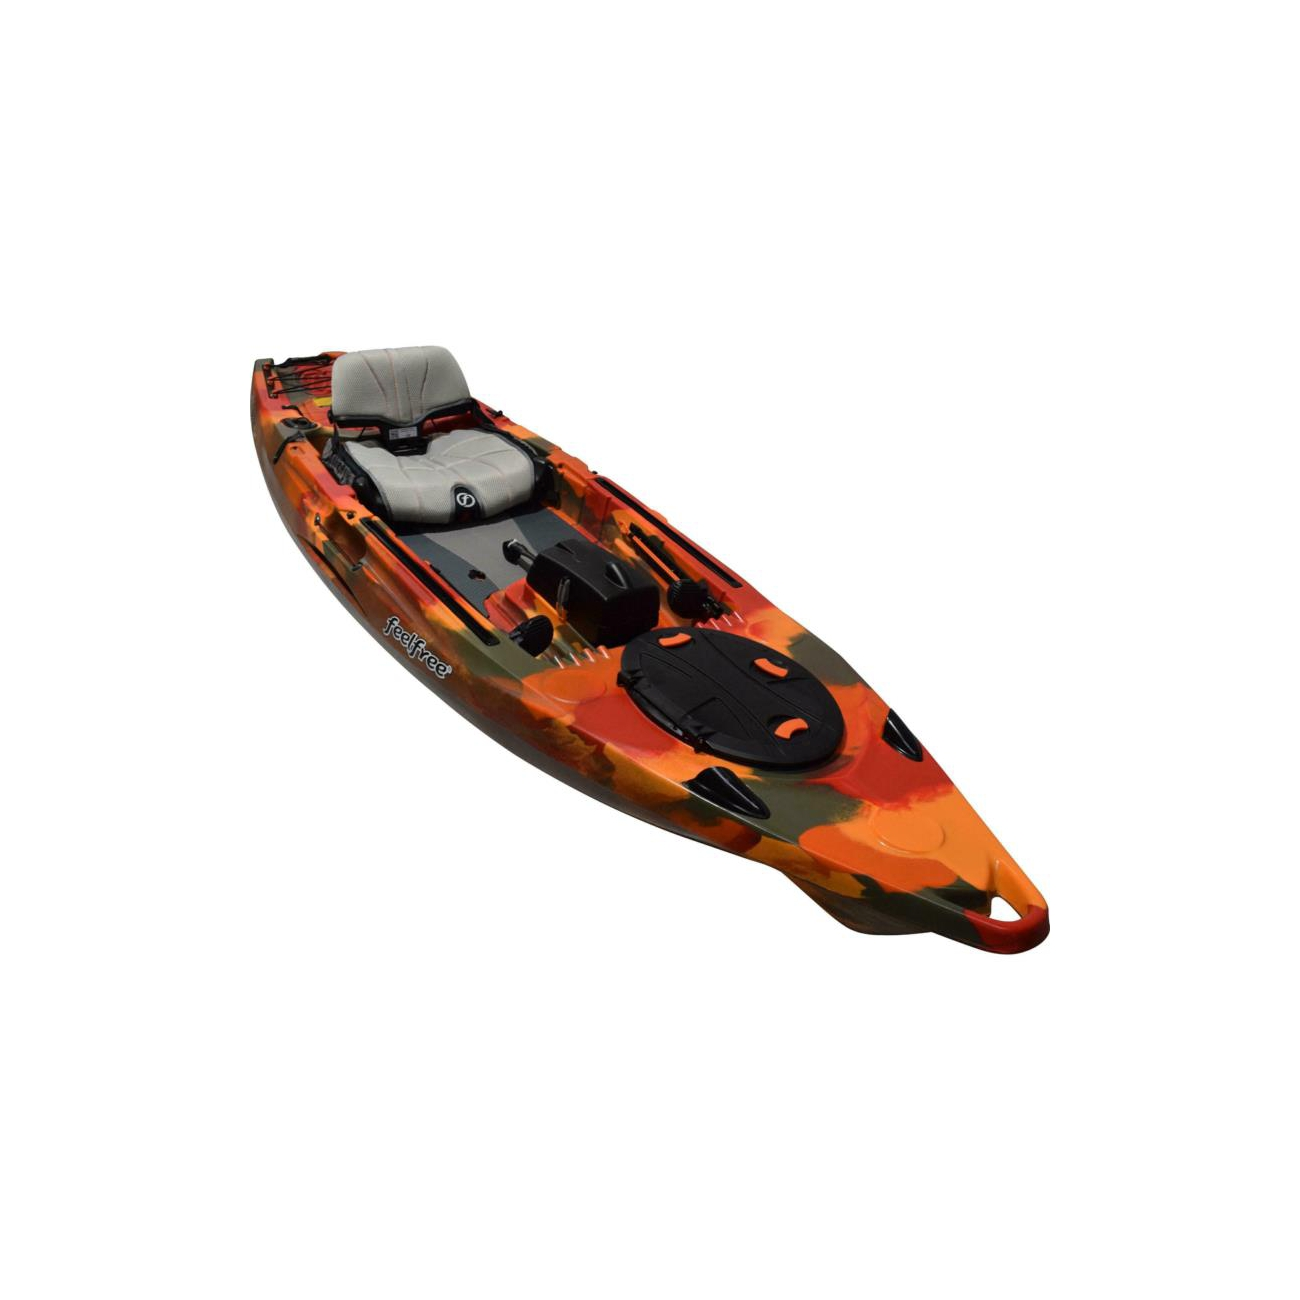 https://feelfreekayak.eu/655-small_default/lure-115-v2-winter-camo.jpg